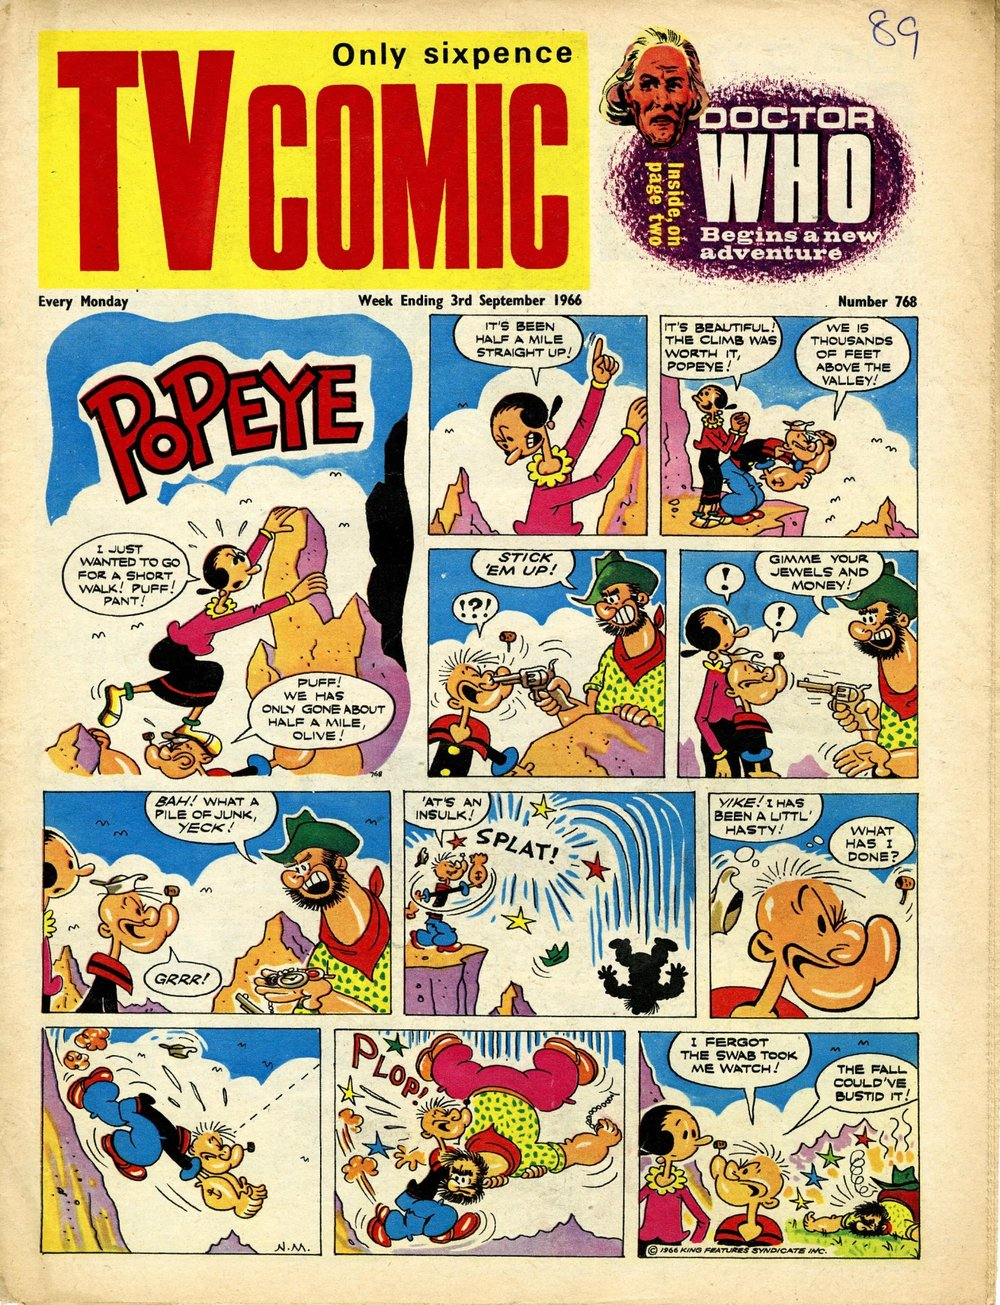 TV Comic, no. 768, 3 September 1966